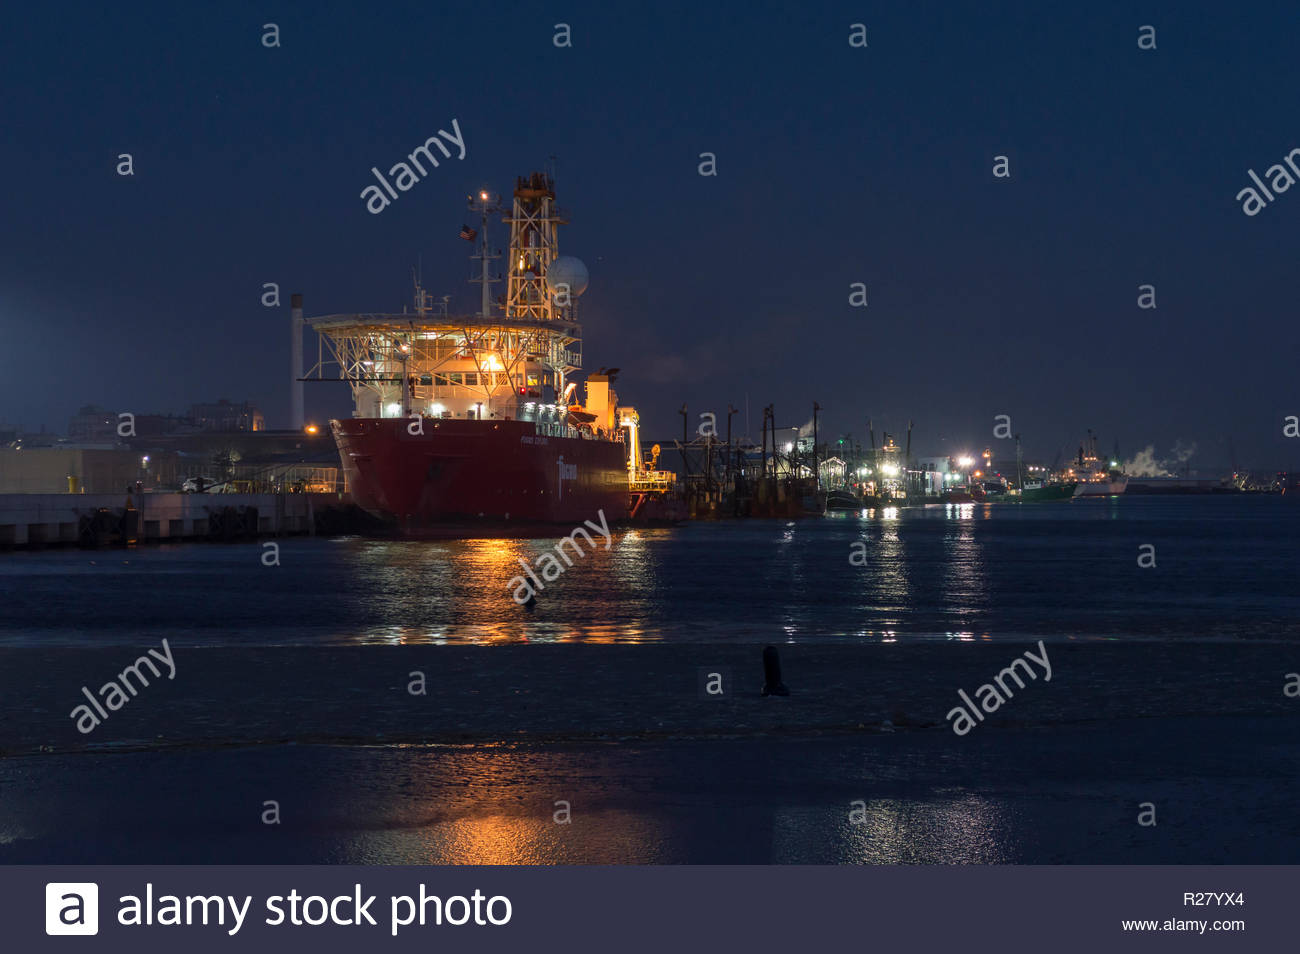 New Bedford, Massachusetts, USA - January 19, 2018: Geotechnical drill ship Fugro Explorer preparing for dawn departure from New Bedford - Stock Image